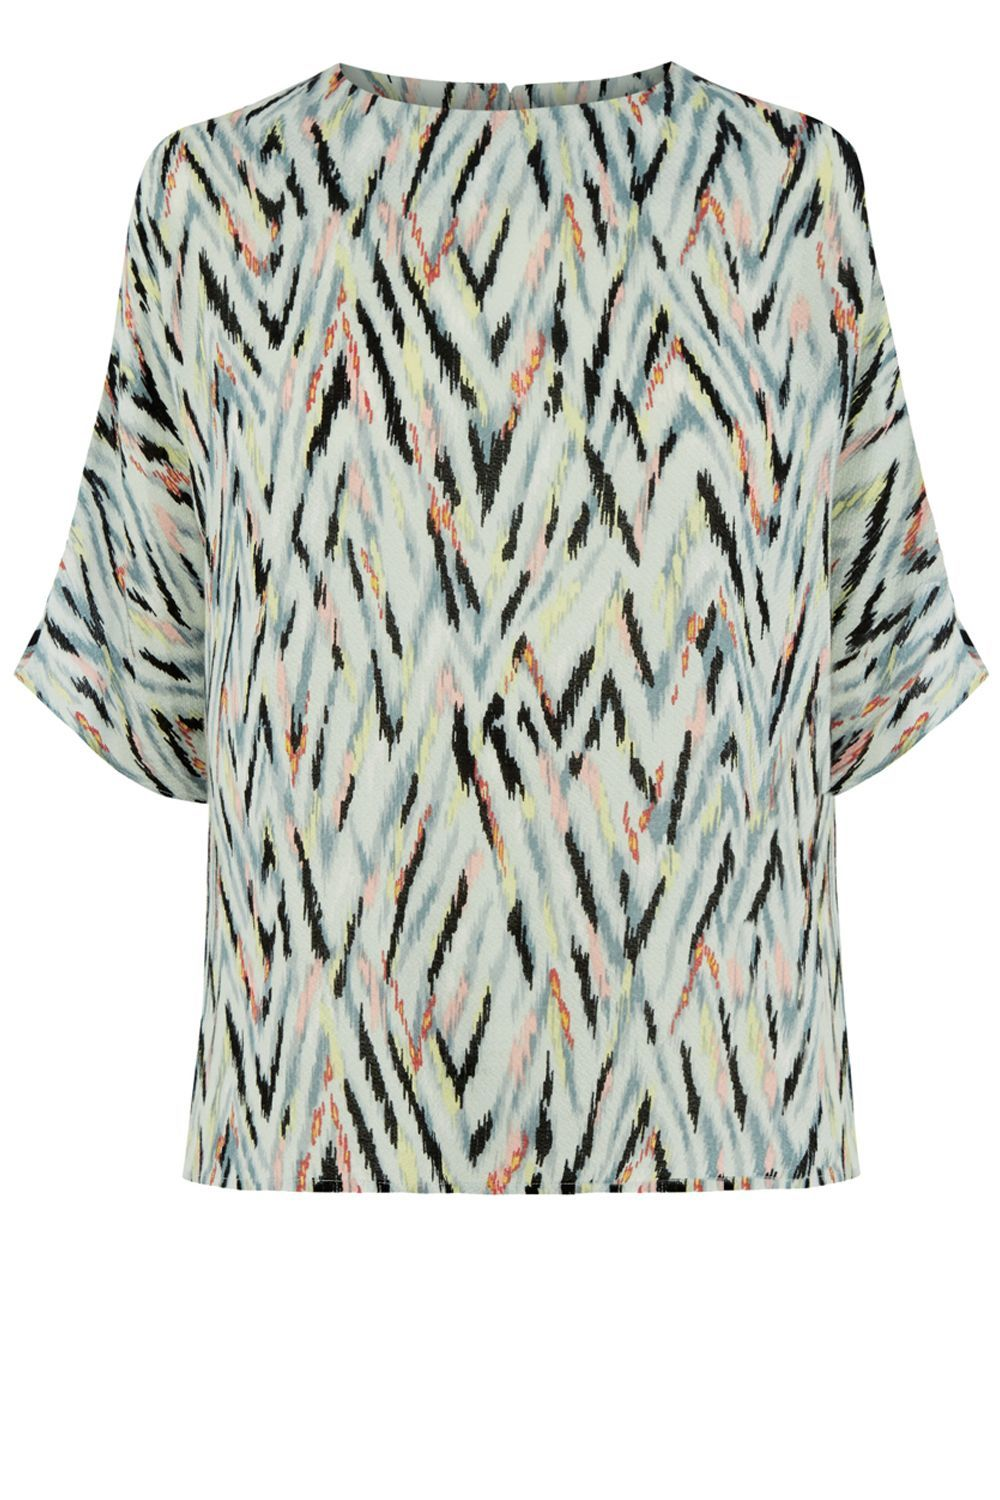 Zig Zag Print Top, Multi Coloured - sleeve style: dolman/batwing; style: t-shirt; predominant colour: pistachio; secondary colour: black; occasions: casual, creative work; length: standard; fibres: polyester/polyamide - 100%; fit: straight cut; neckline: crew; sleeve length: half sleeve; pattern type: fabric; pattern: patterned/print; texture group: woven light midweight; pattern size: big & busy (top); multicoloured: multicoloured; season: a/w 2016; wardrobe: highlight